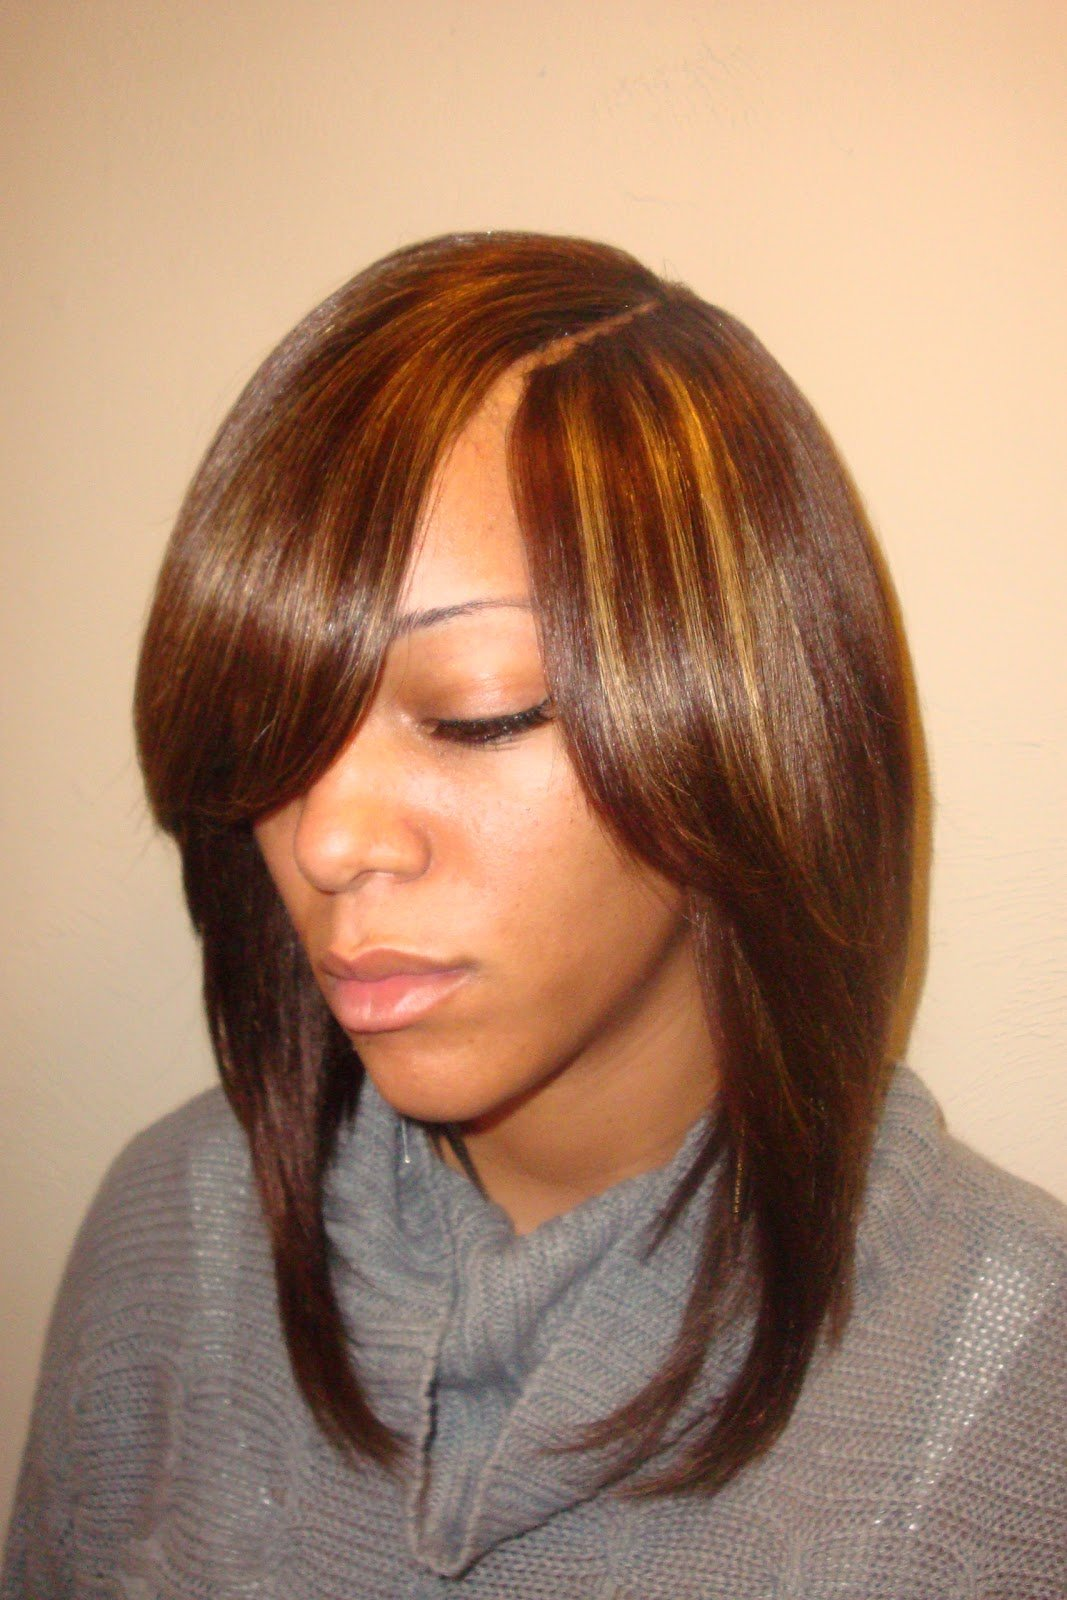 The Best Yinka S Ultimate Hair Designs 12 1 11 1 1 12 Pictures